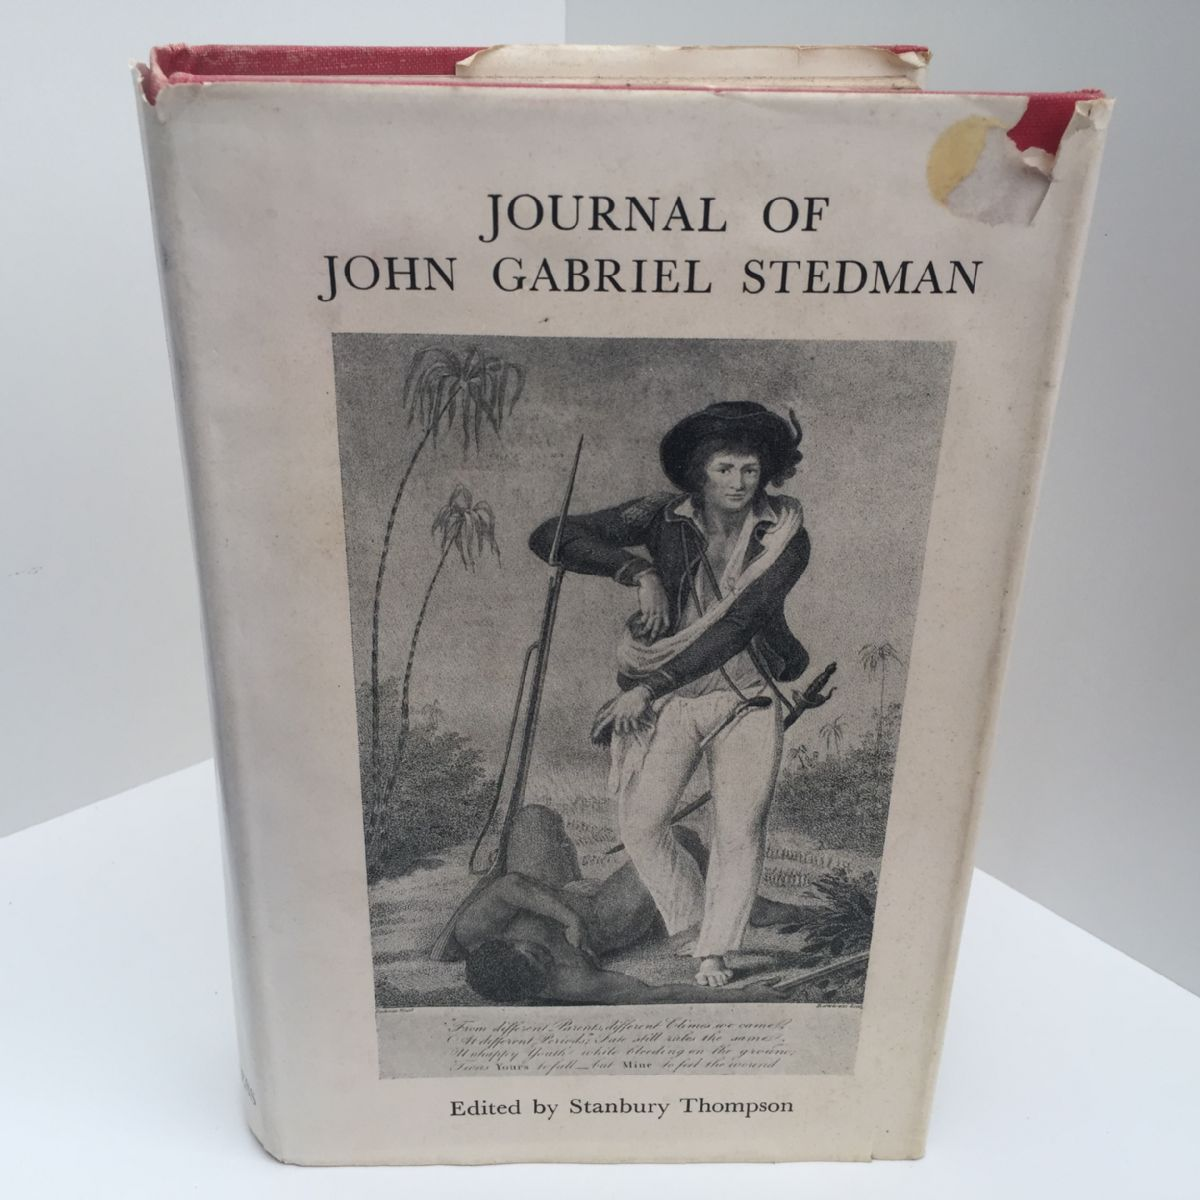 The Journal of John Gabriel Stedman